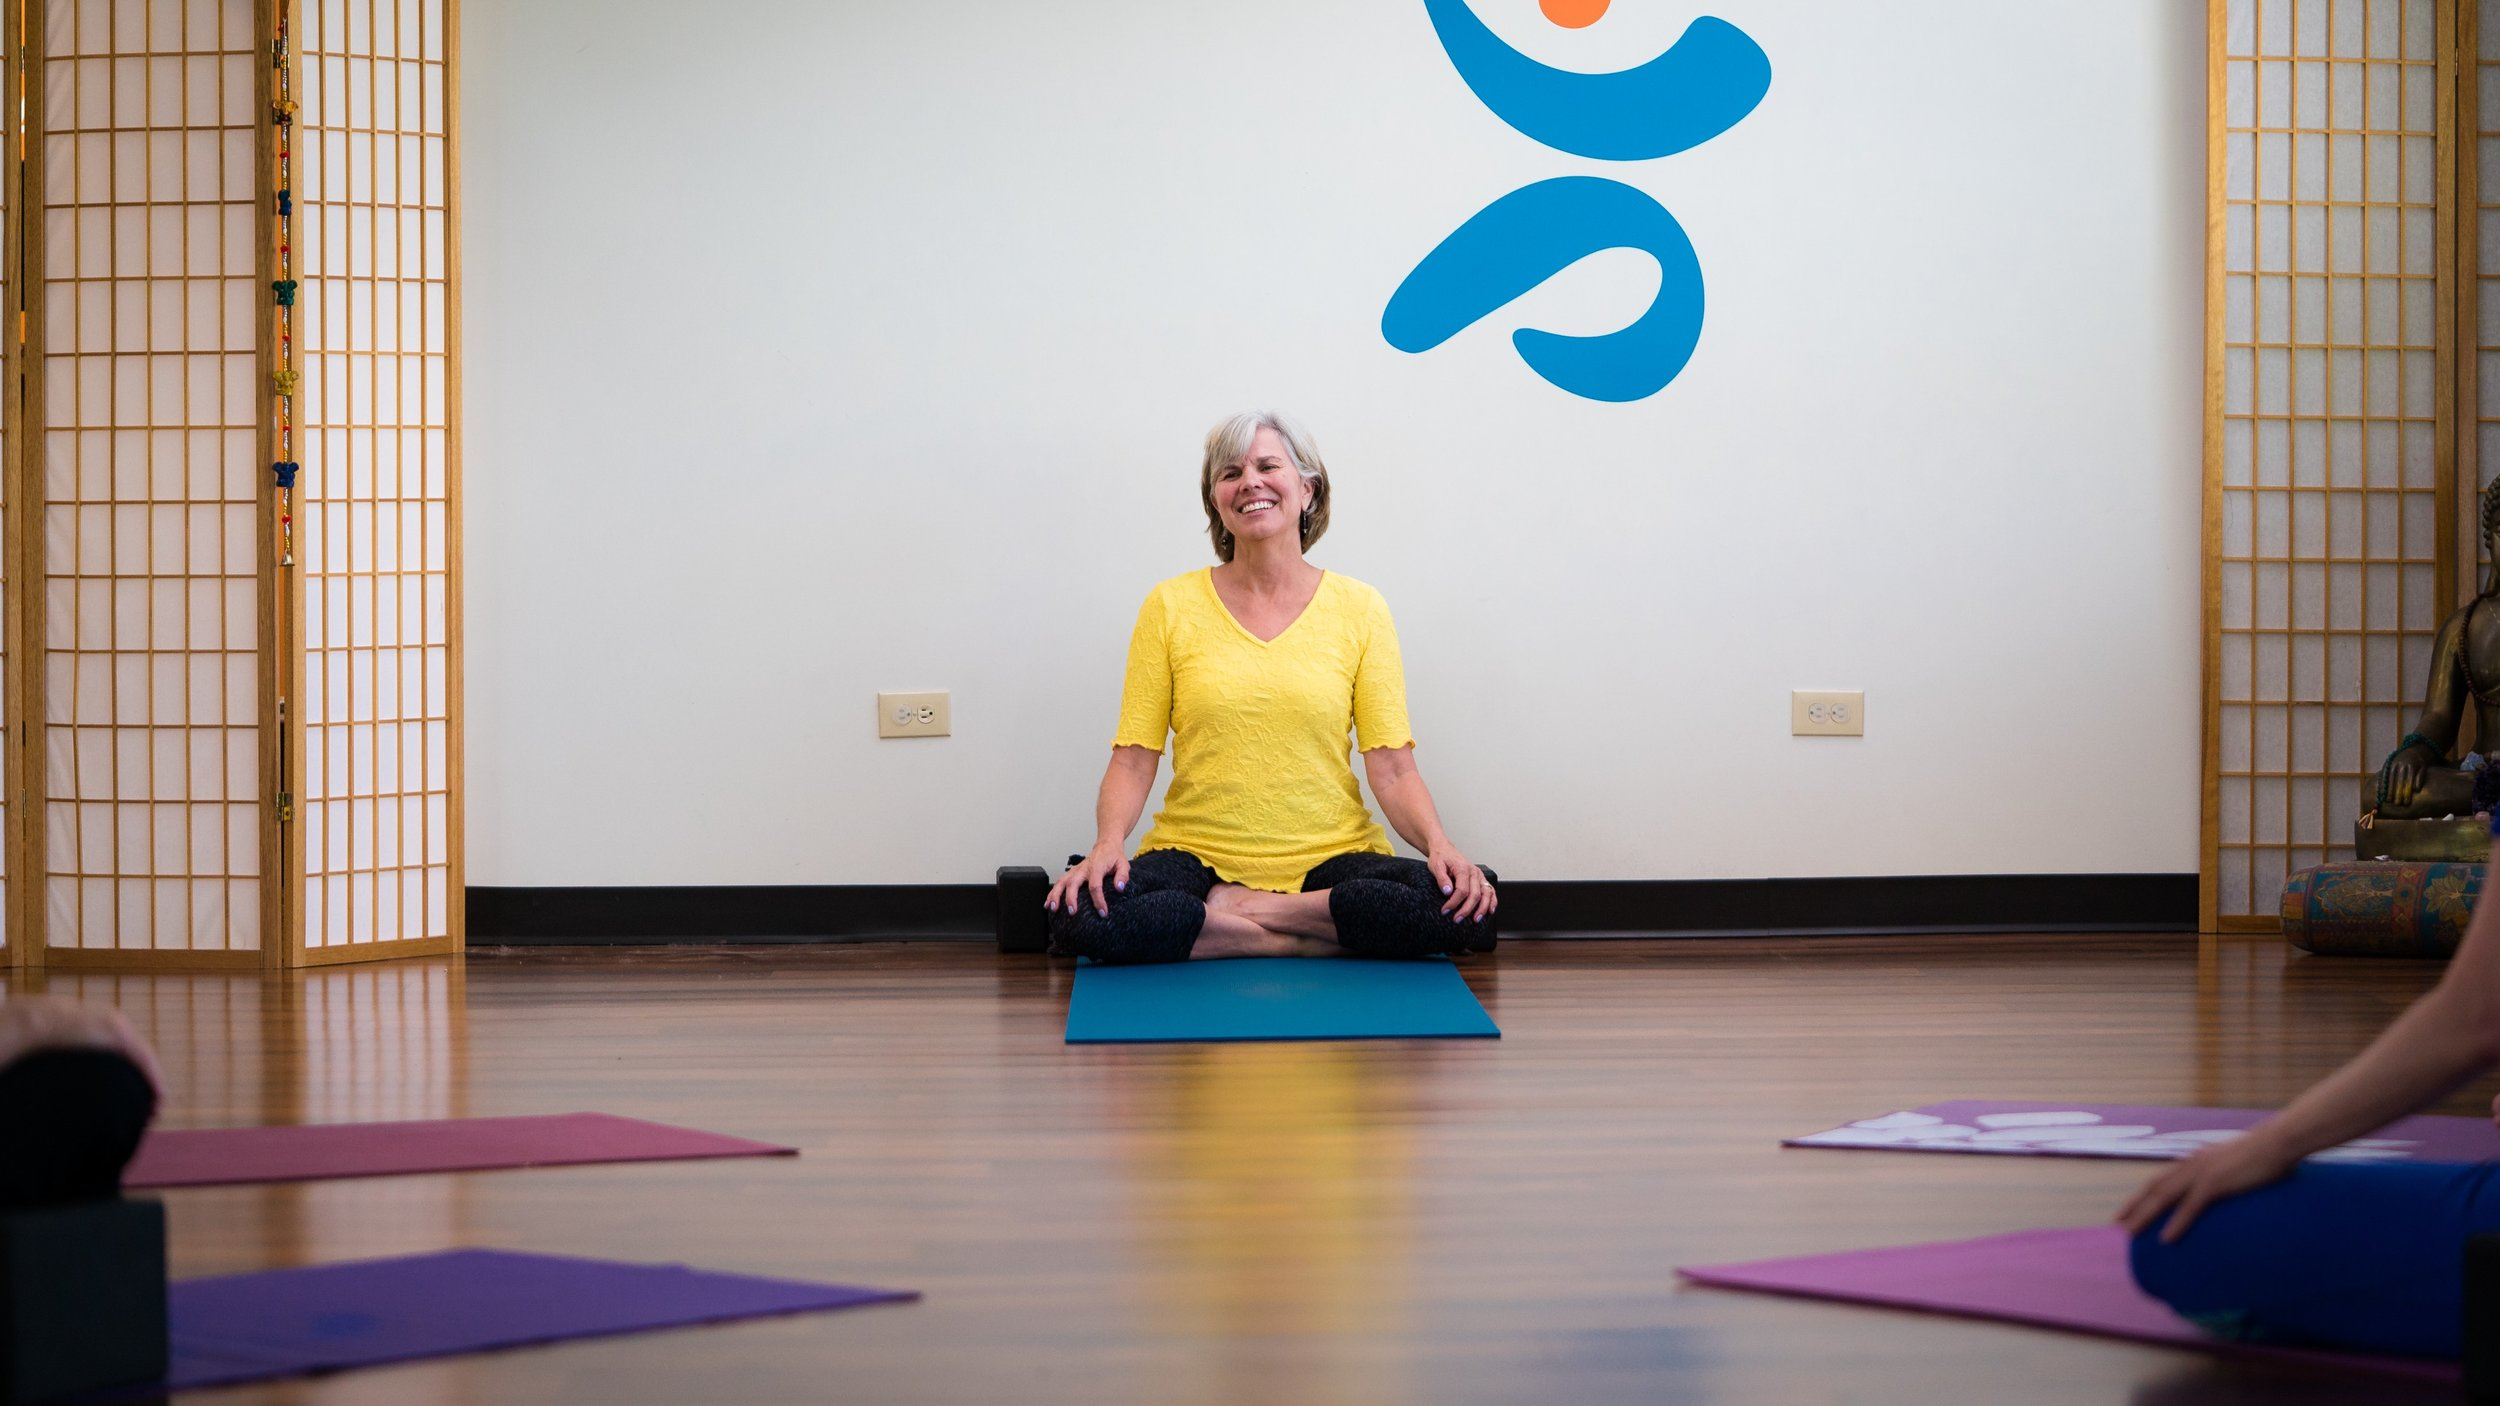 We have two locations in Denver, CO and Carmel, CA as well as available workshops and yoga retreats around the world! For locations to our Denver and Carmel offices please scroll down!